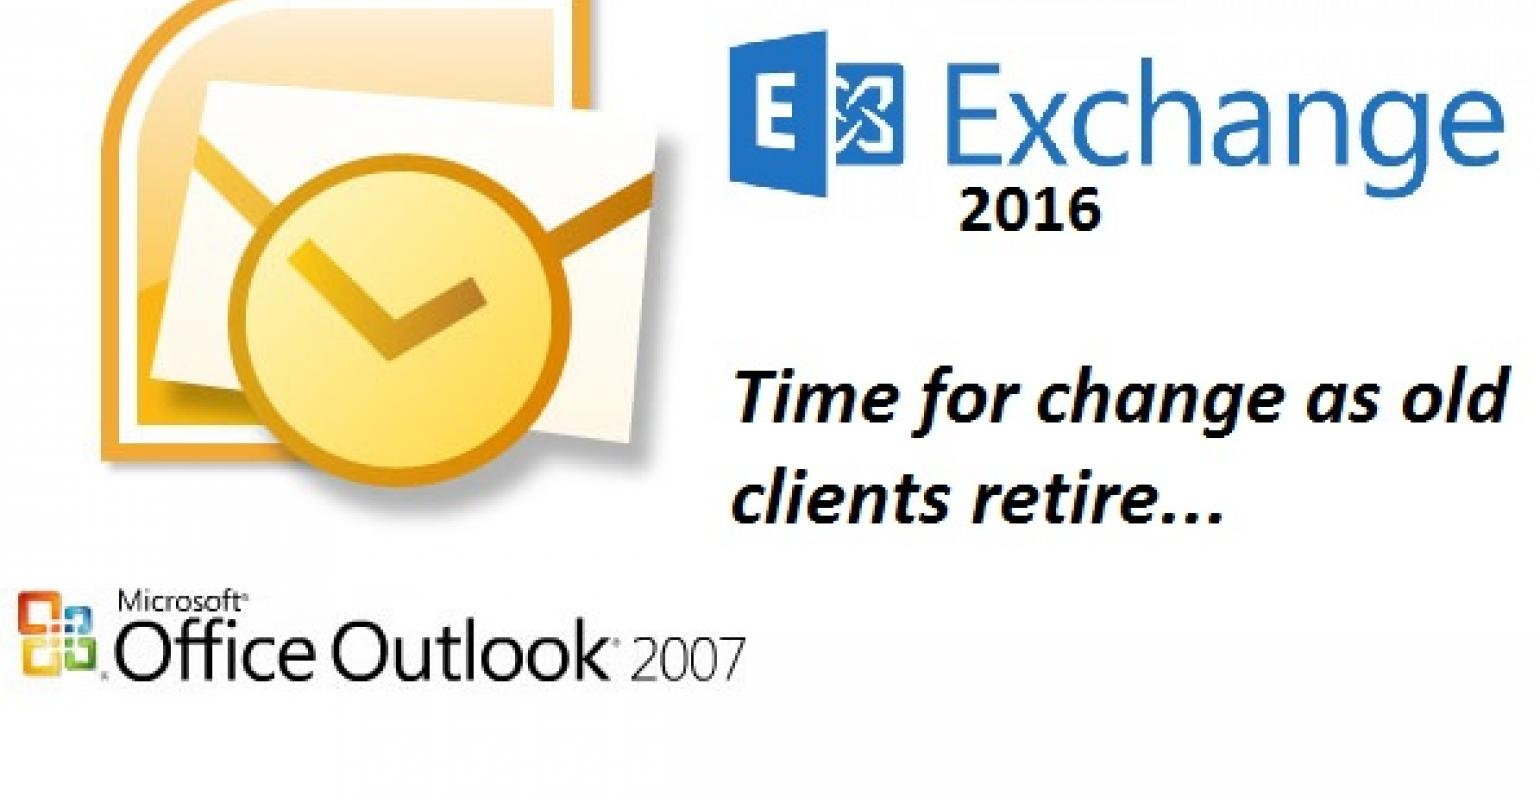 Why Exchange 2016 gnores Outlook 2007   IT Pro